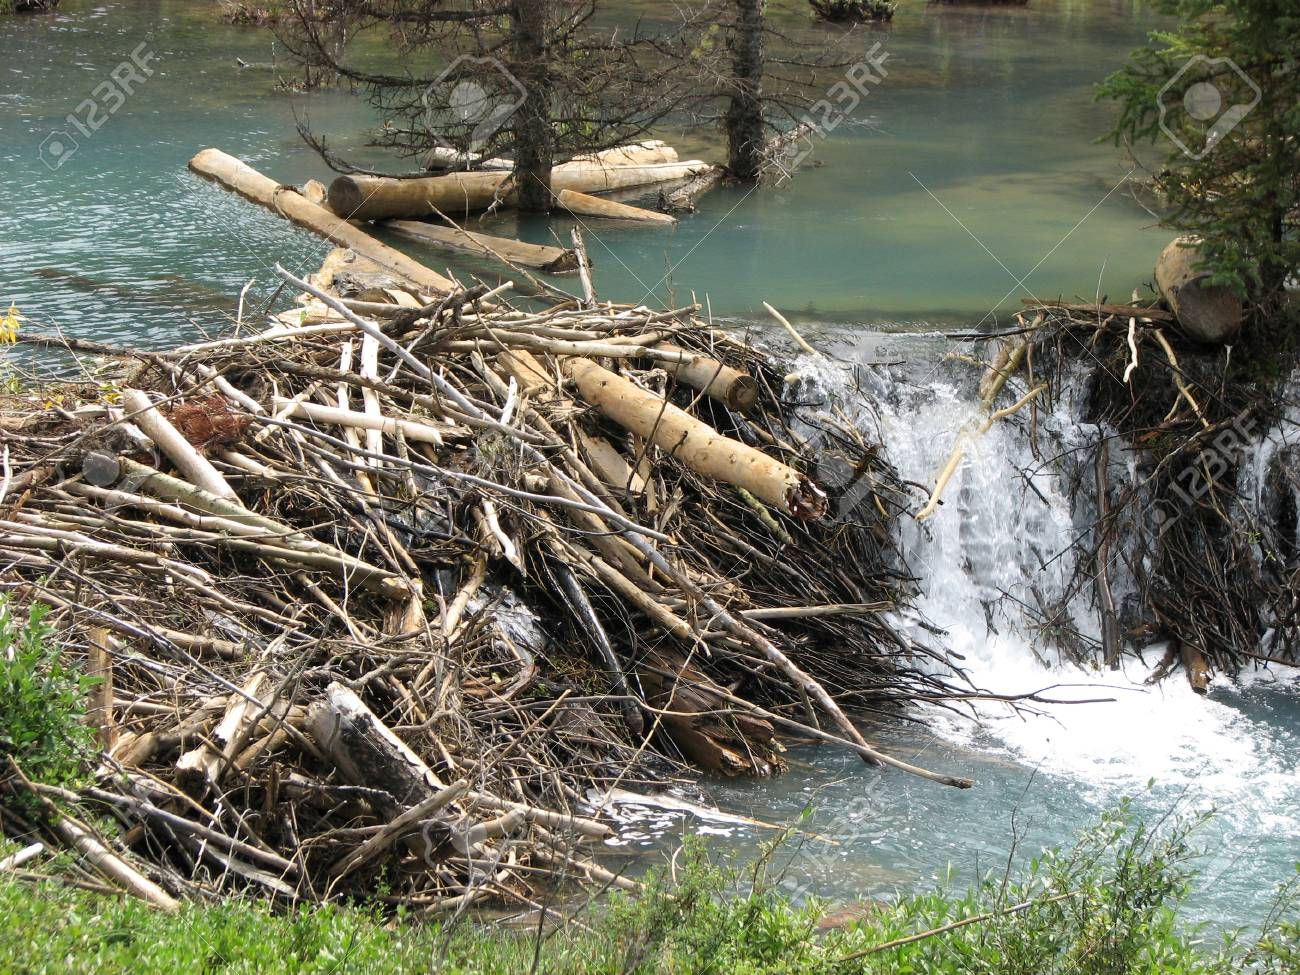 beaver dam stock photos royalty free beaver dam images and pictures